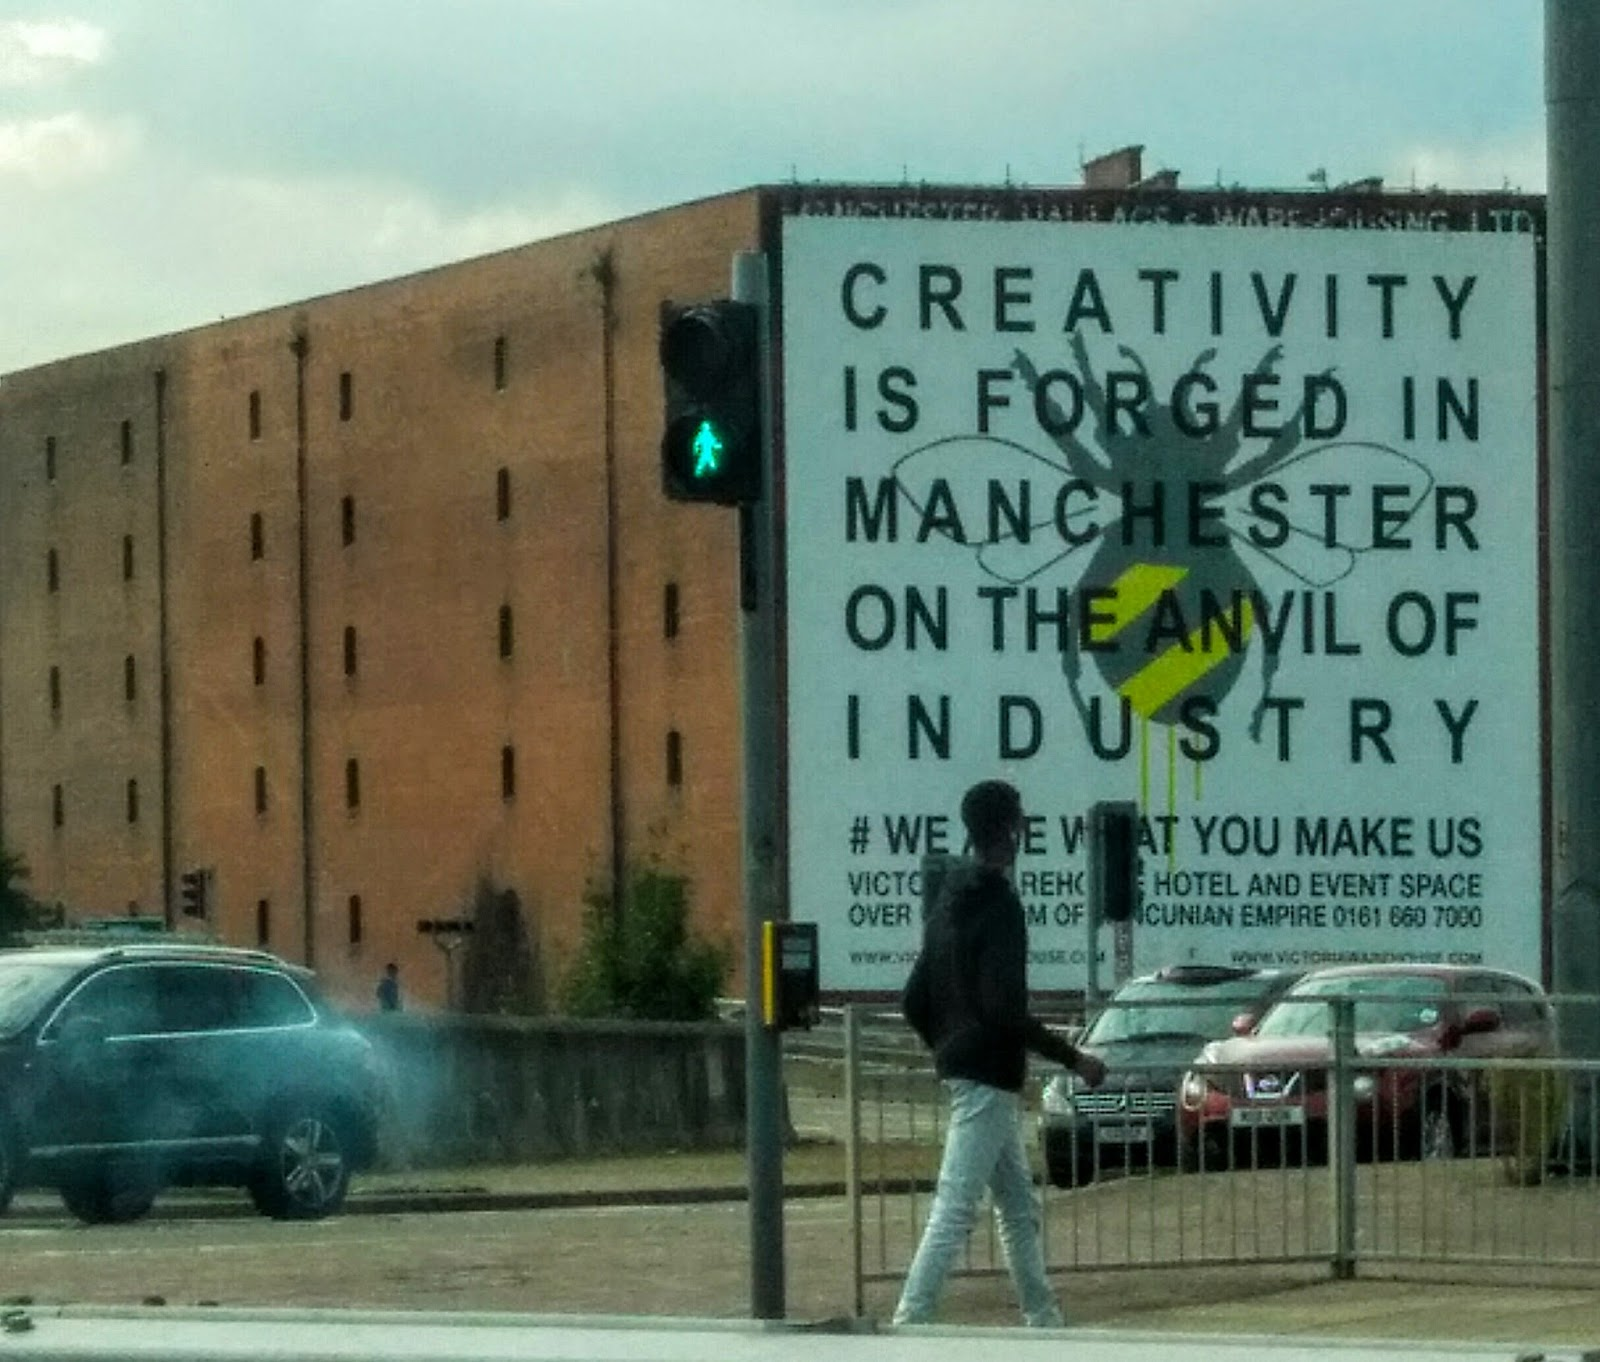 Creativity is forged in #Manchester on the anvil of industry ...